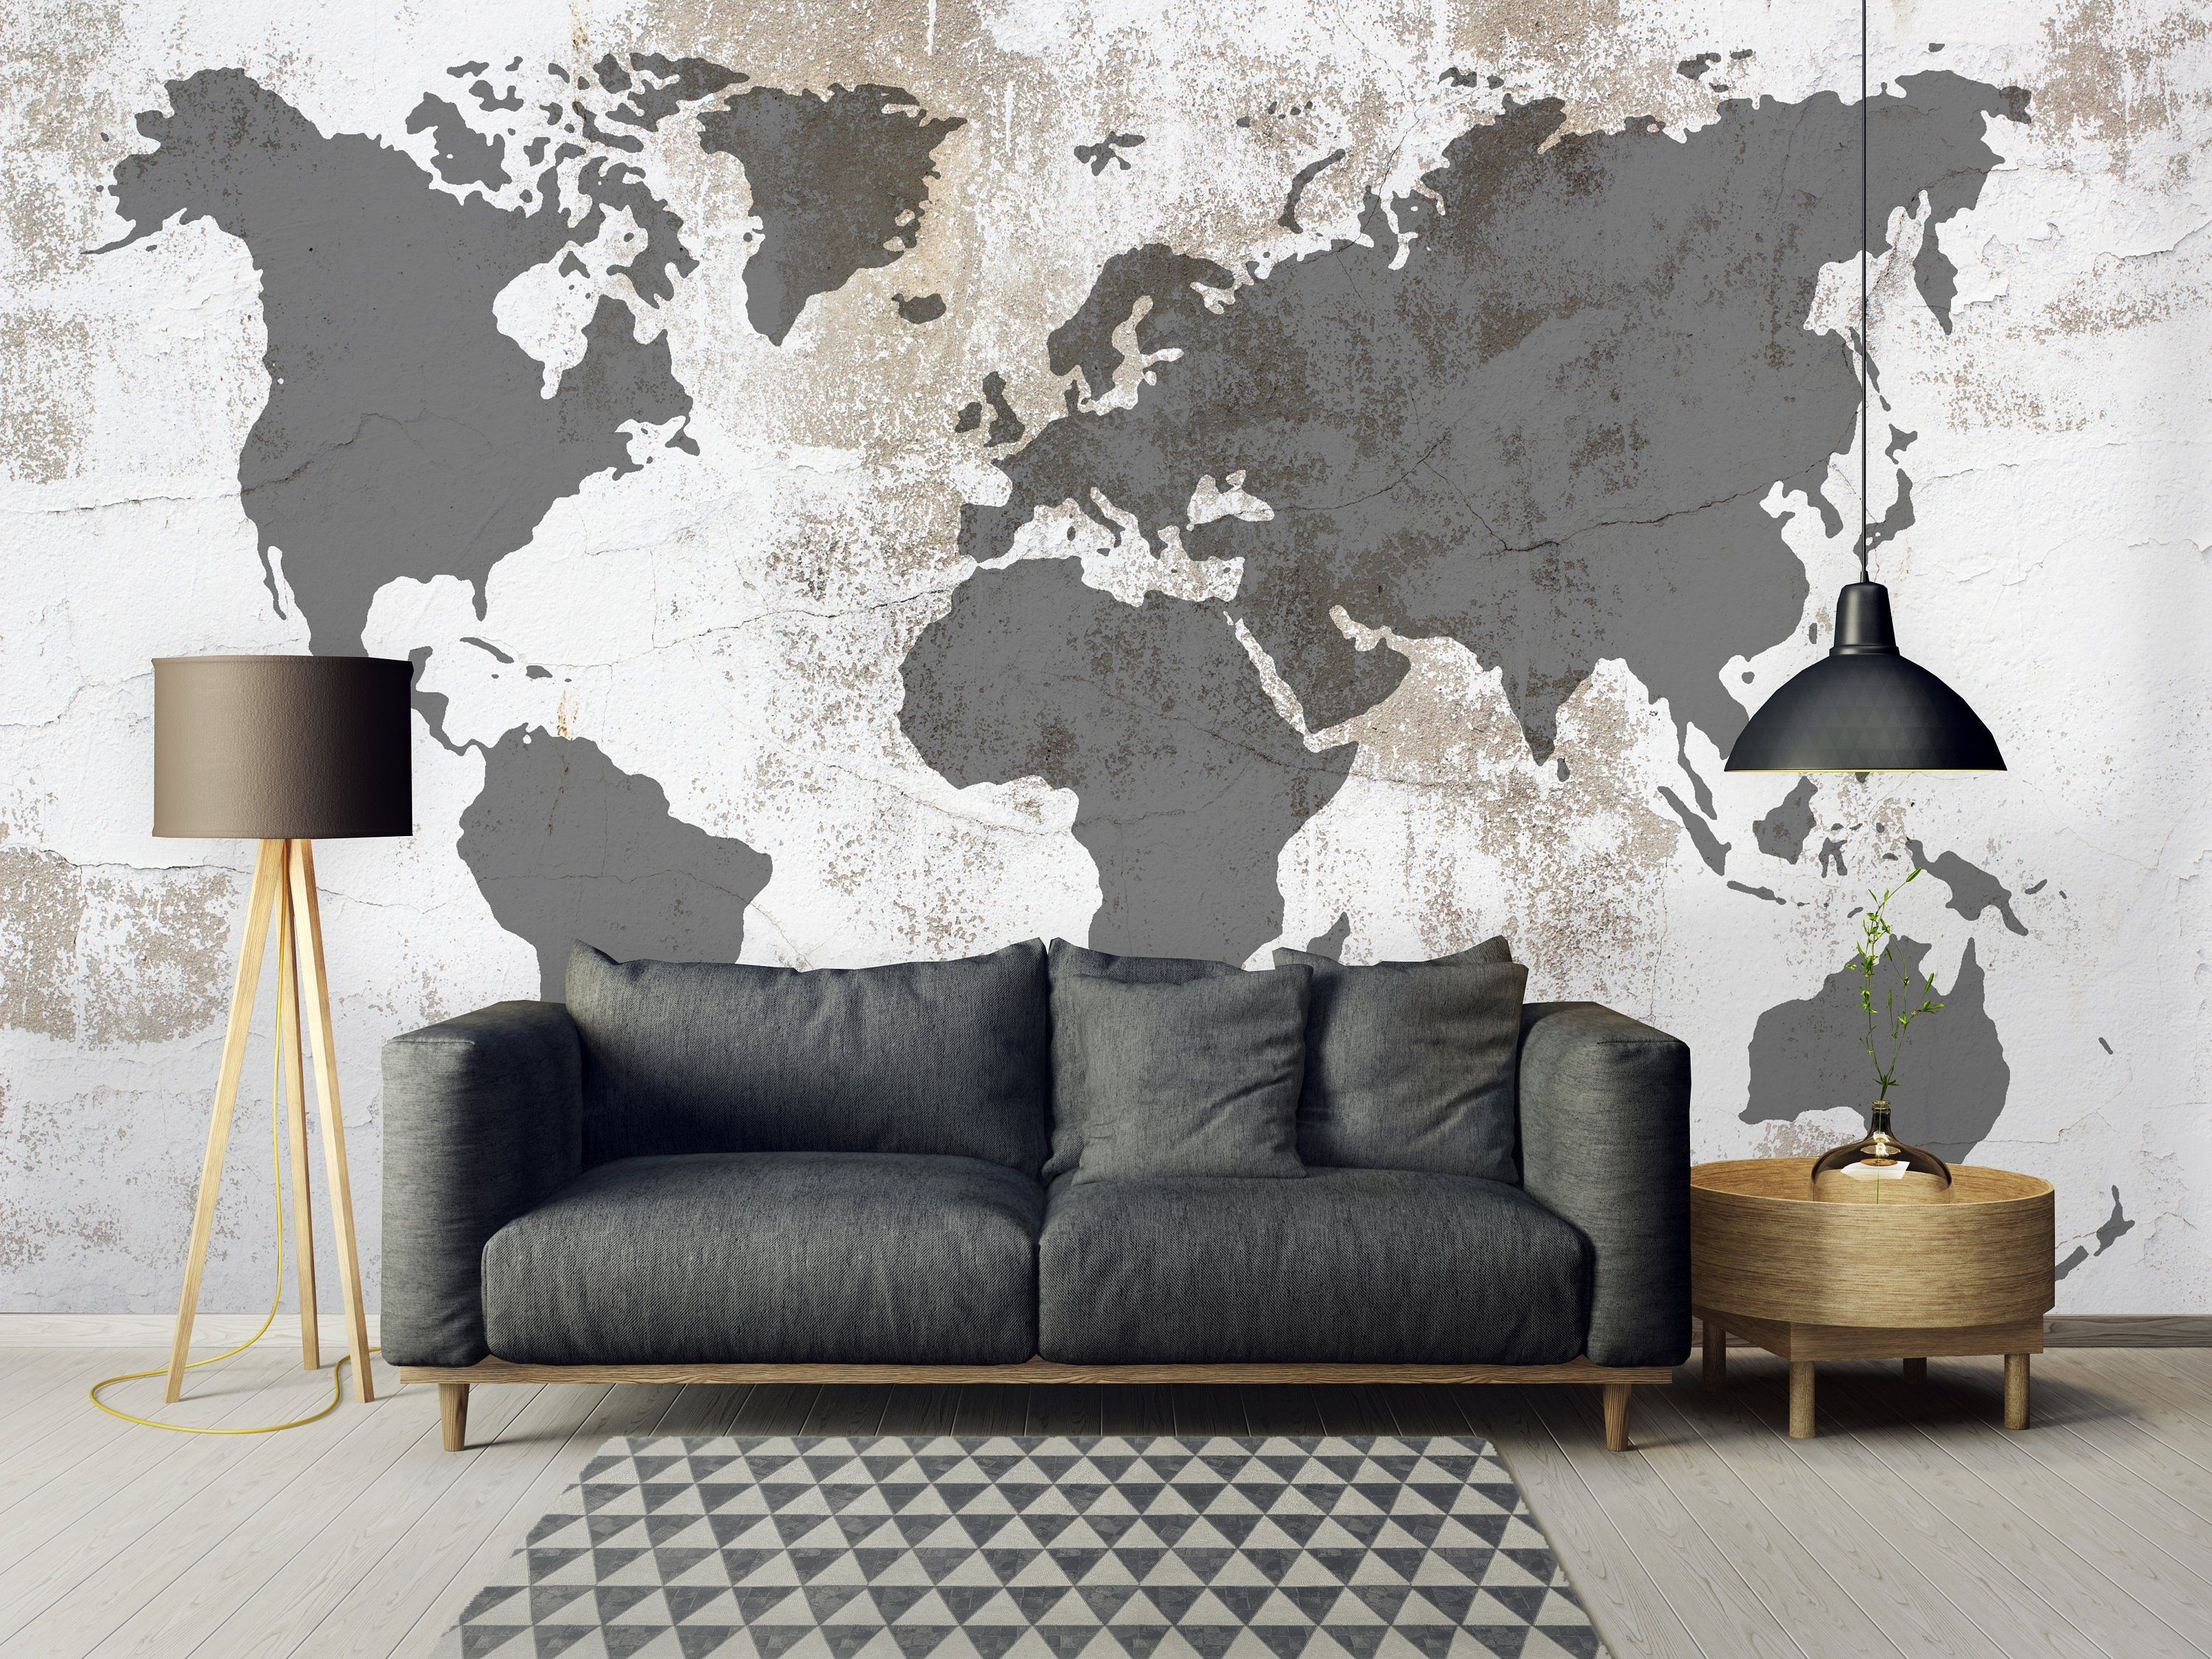 Removable Wallpaper Peel and Stick Cement Wallpaper